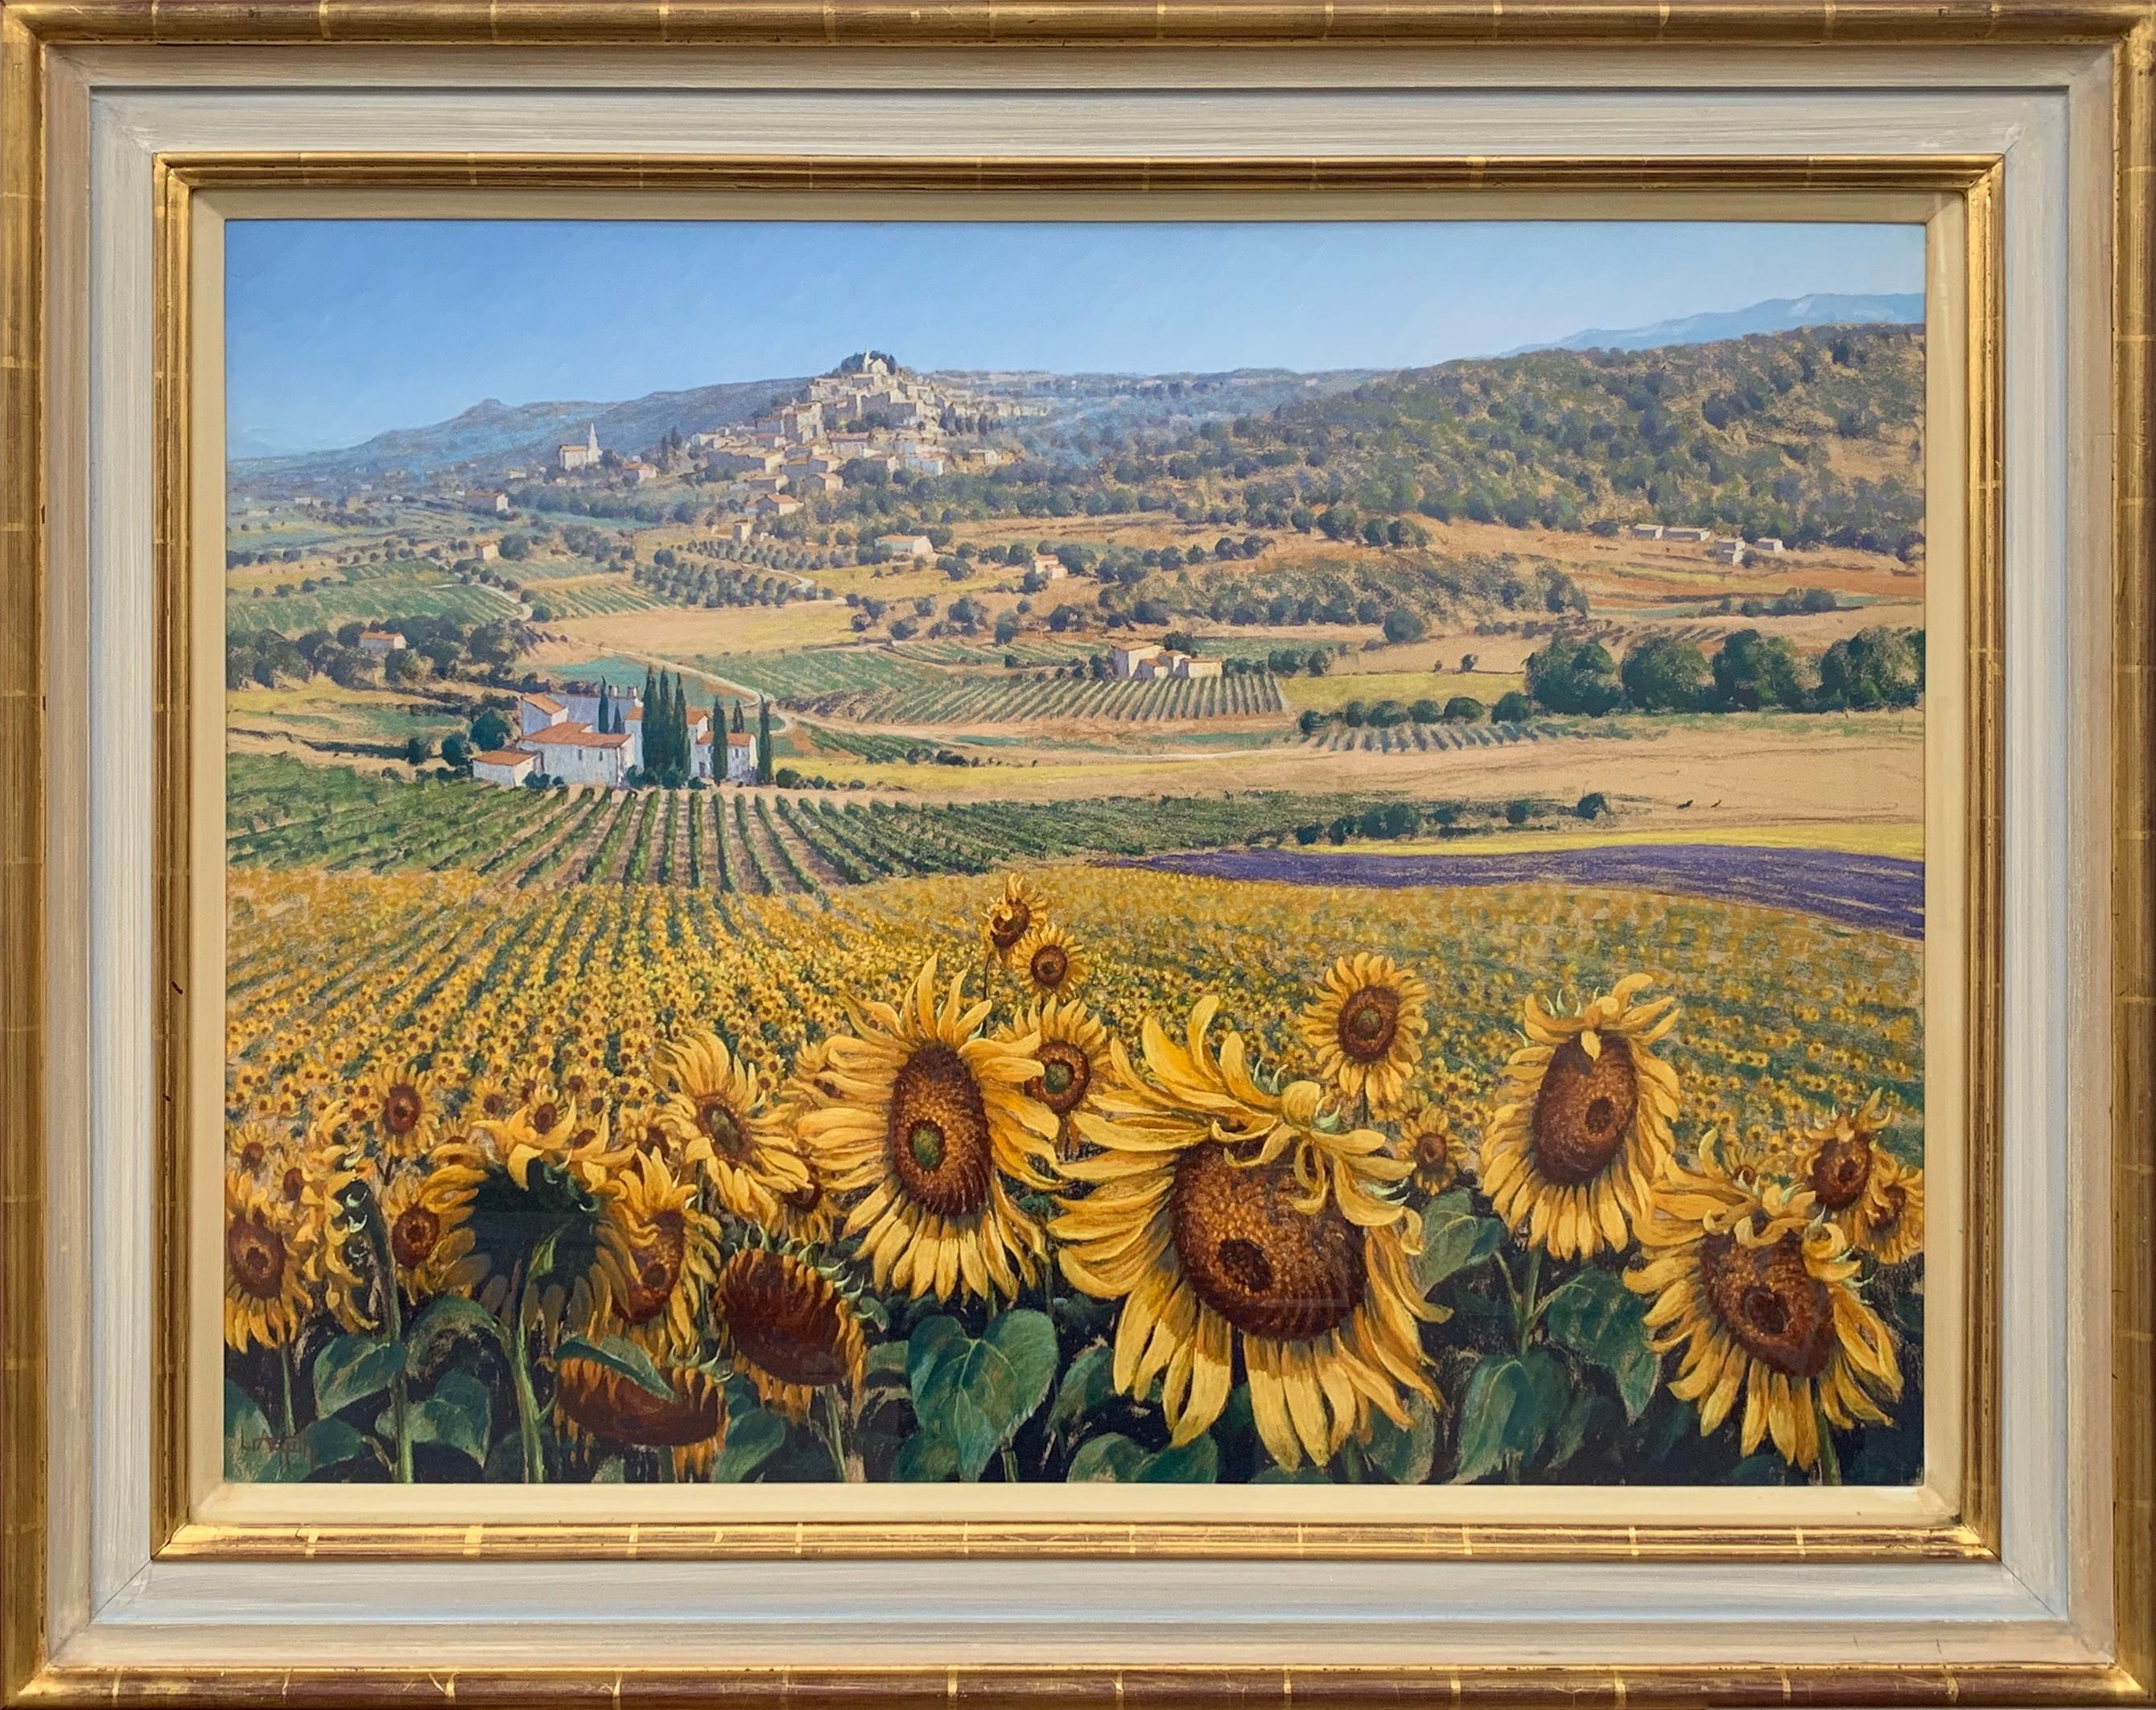 Sunflowers in Bonnieux Provence France Landscape by 20th Century British Artist